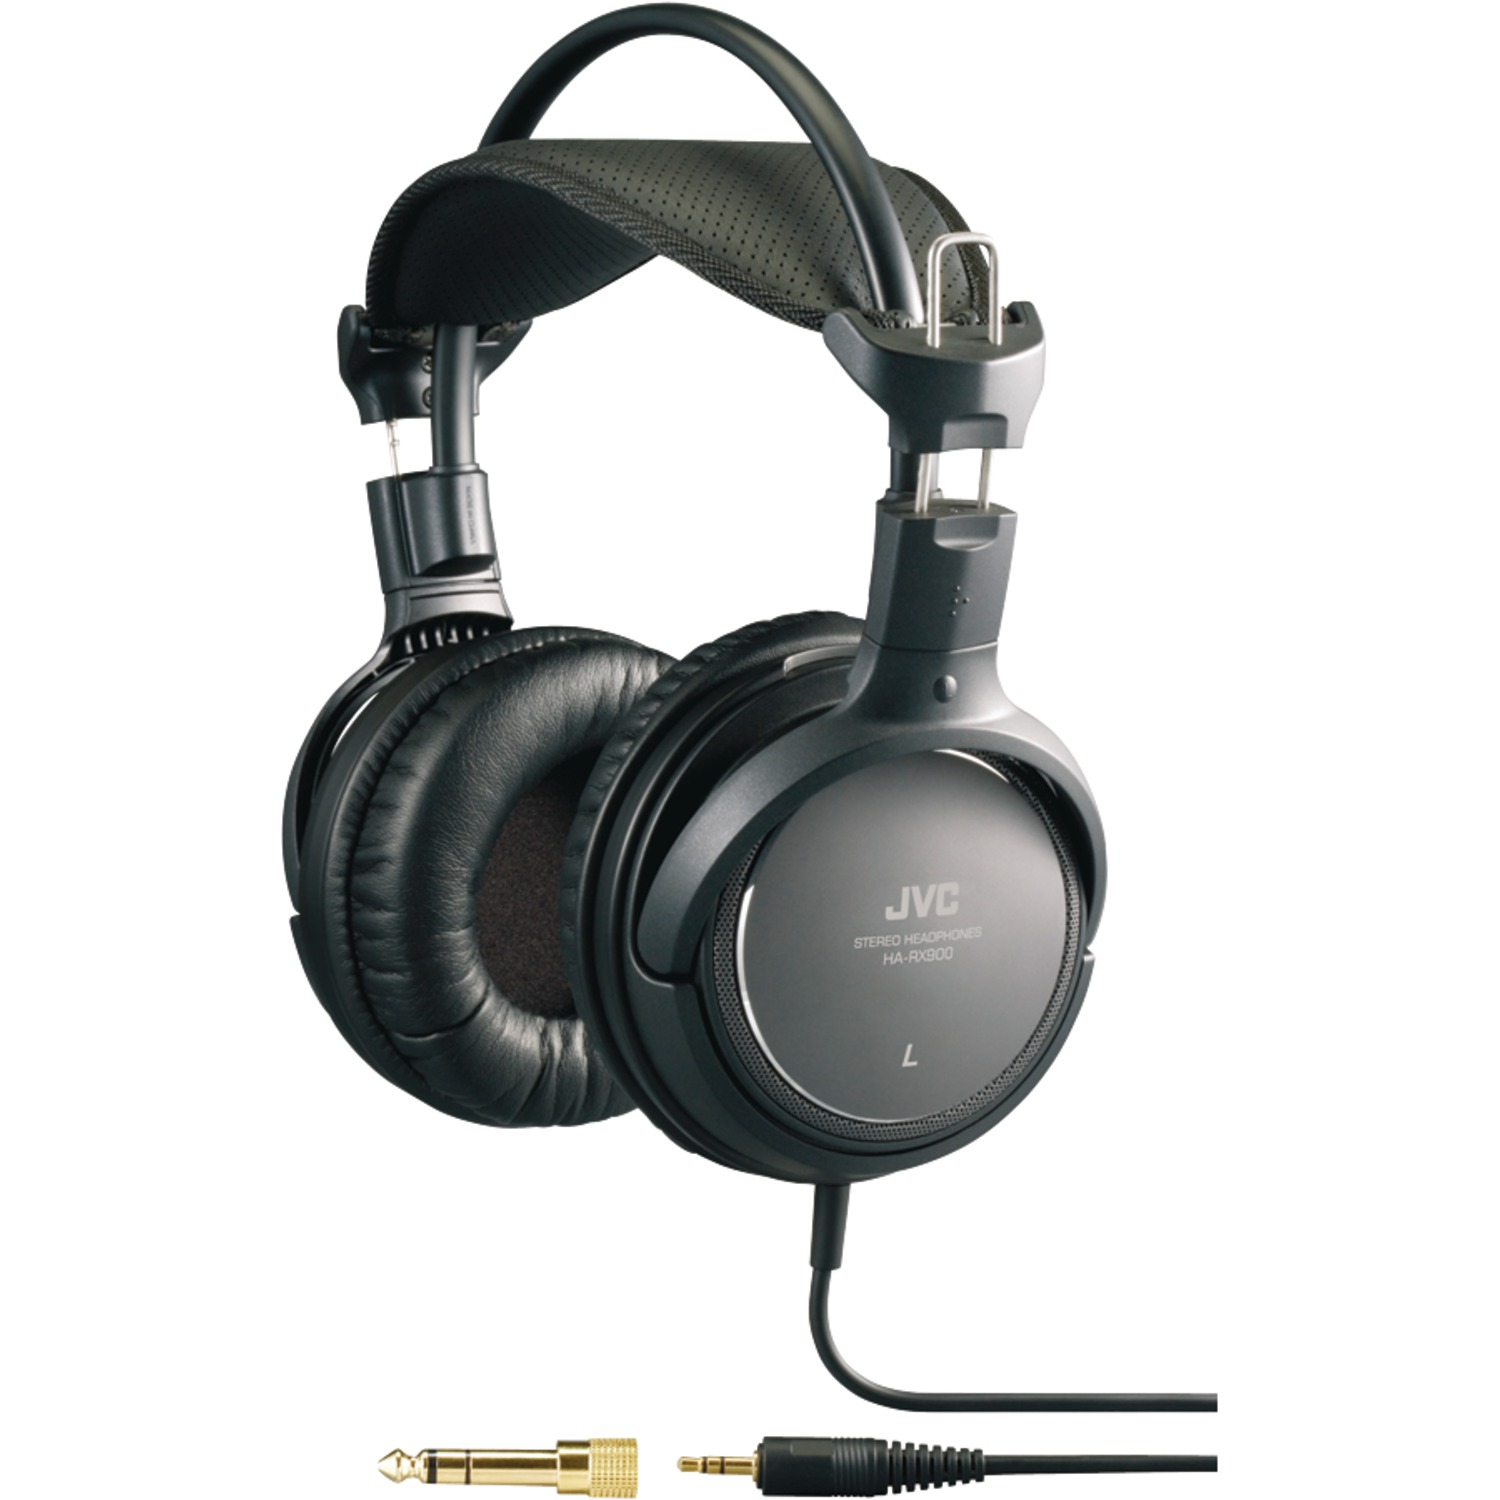 JVC HARX900 Dynamic Sound High-Grade Full-Size Headphones